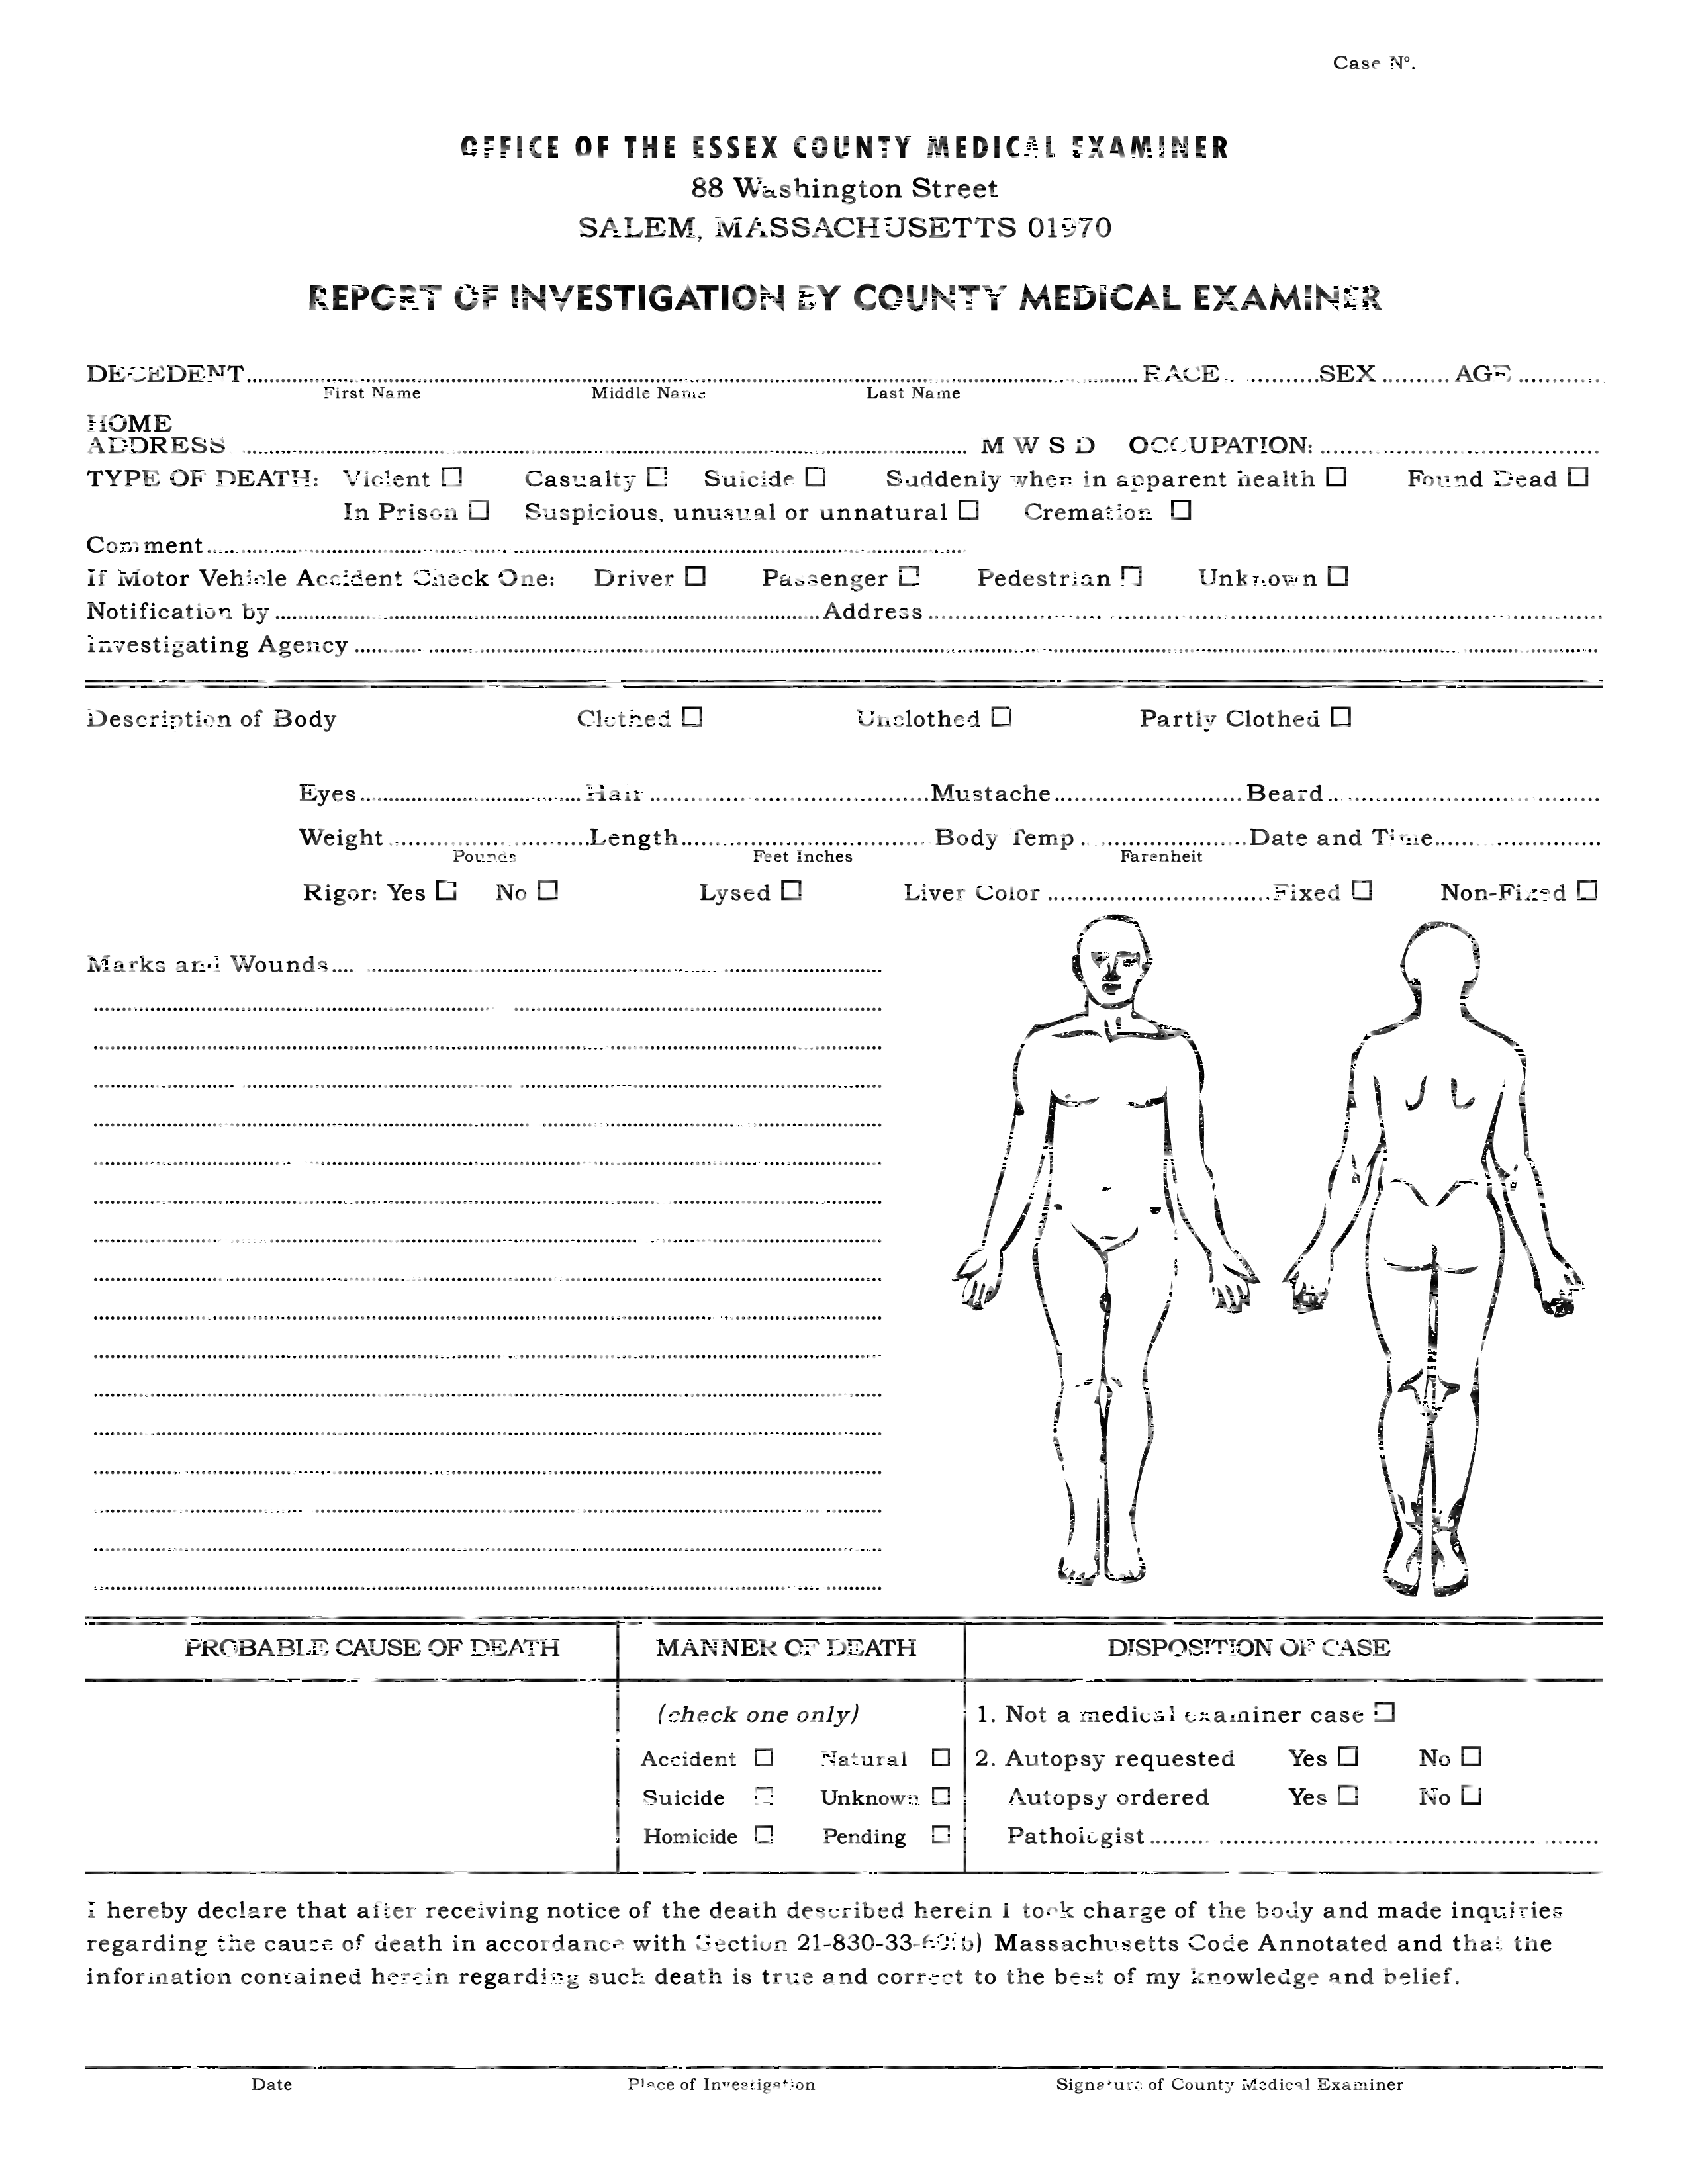 Forensic drawing autopsy. Detective case file template